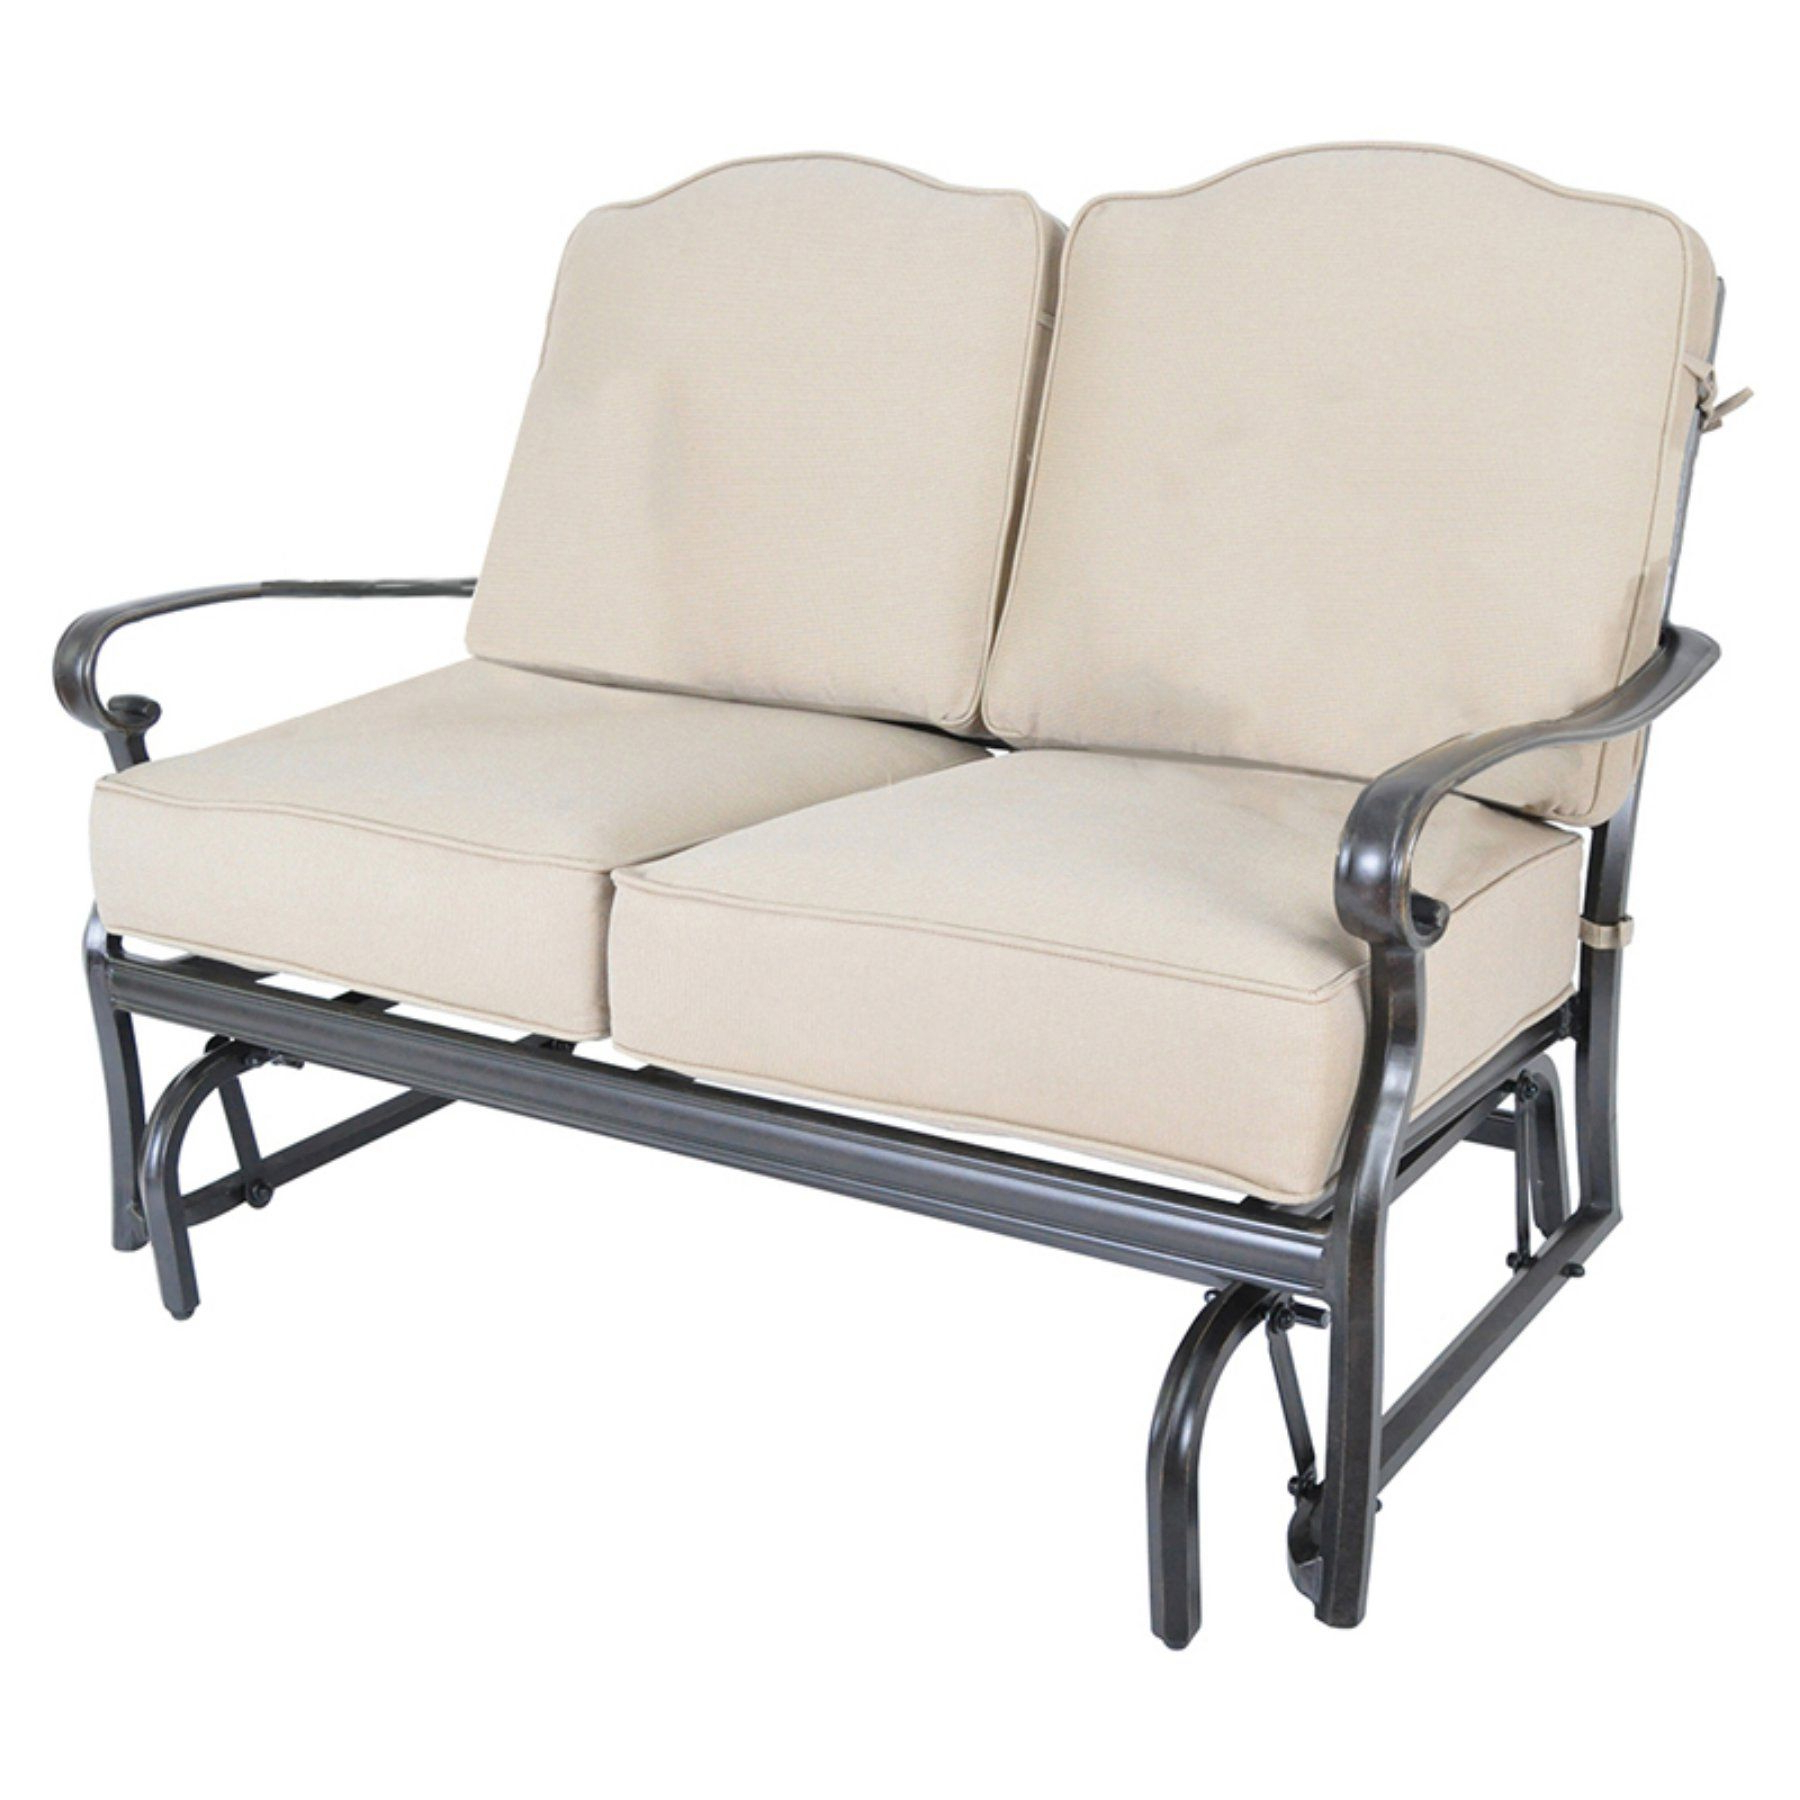 Outdoor Loveseat Gliders With Cushion With Regard To Well Known Veranda Classics Harmony Aluminum Patio Loveseat Glider (Gallery 11 of 30)